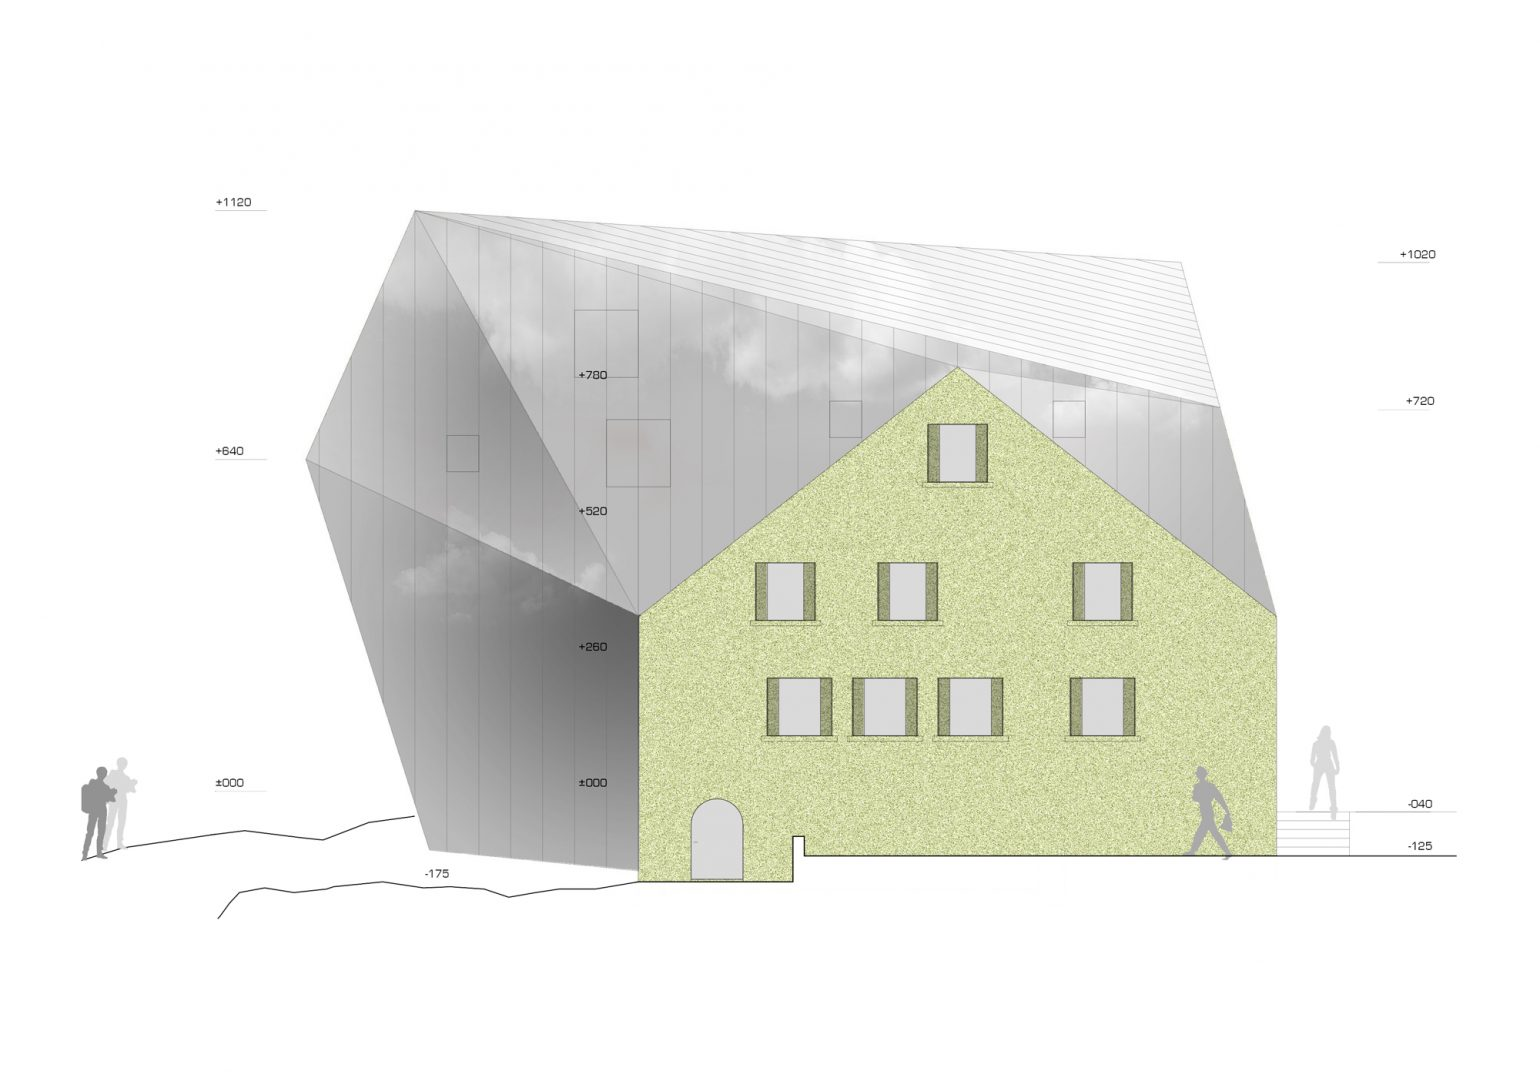 cabane_moiry_grimenz_meyer_architecture_sion_05